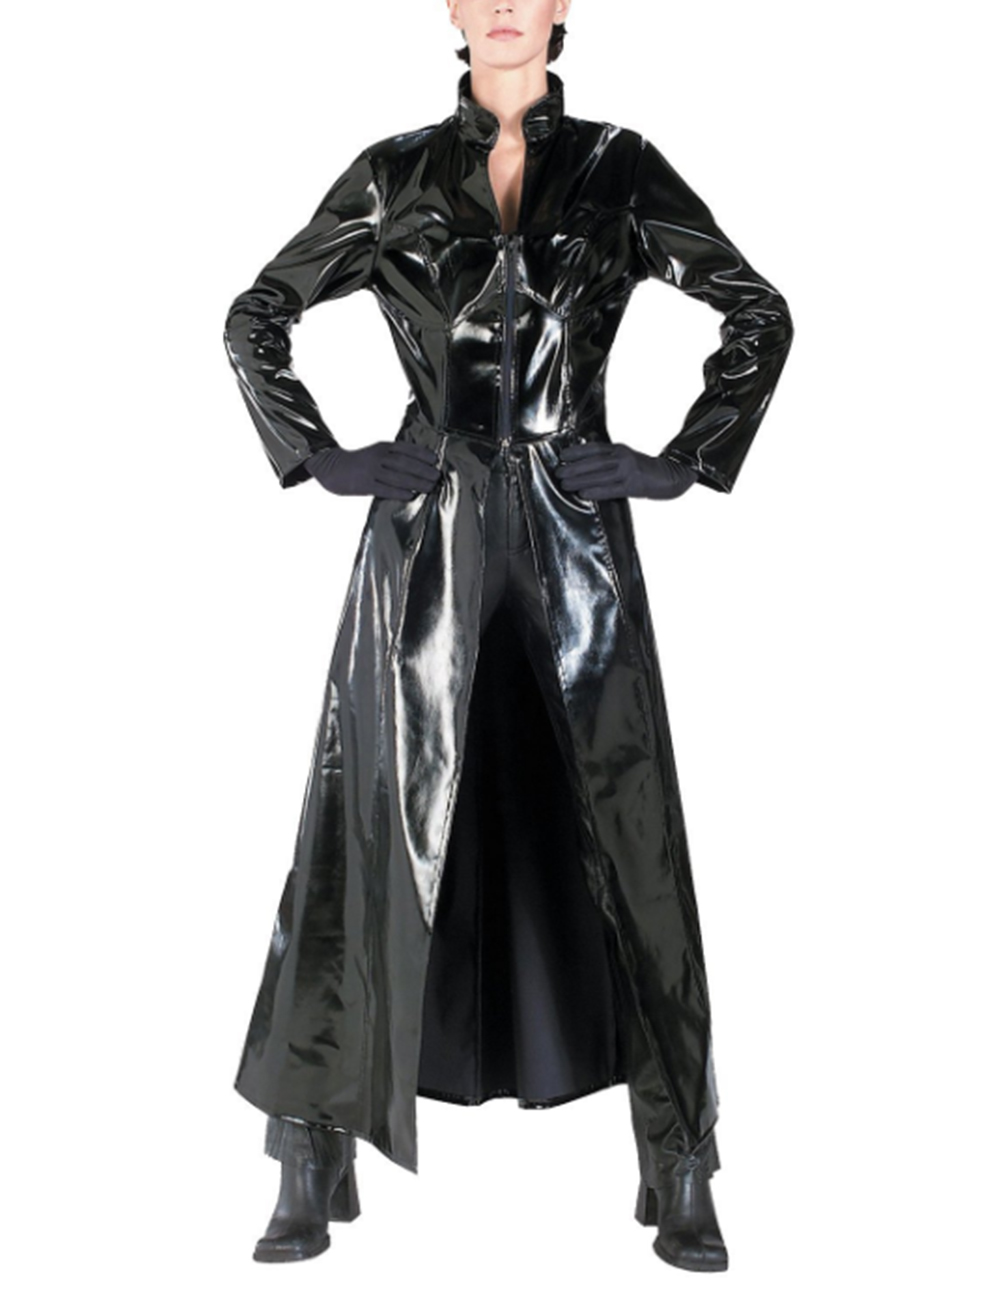 Unisex PVC Leather Matrix Coat Sexy Reloaded Trinity Reloaded Long Bodysuit Halloween Cosplay Adult Costume Black_S